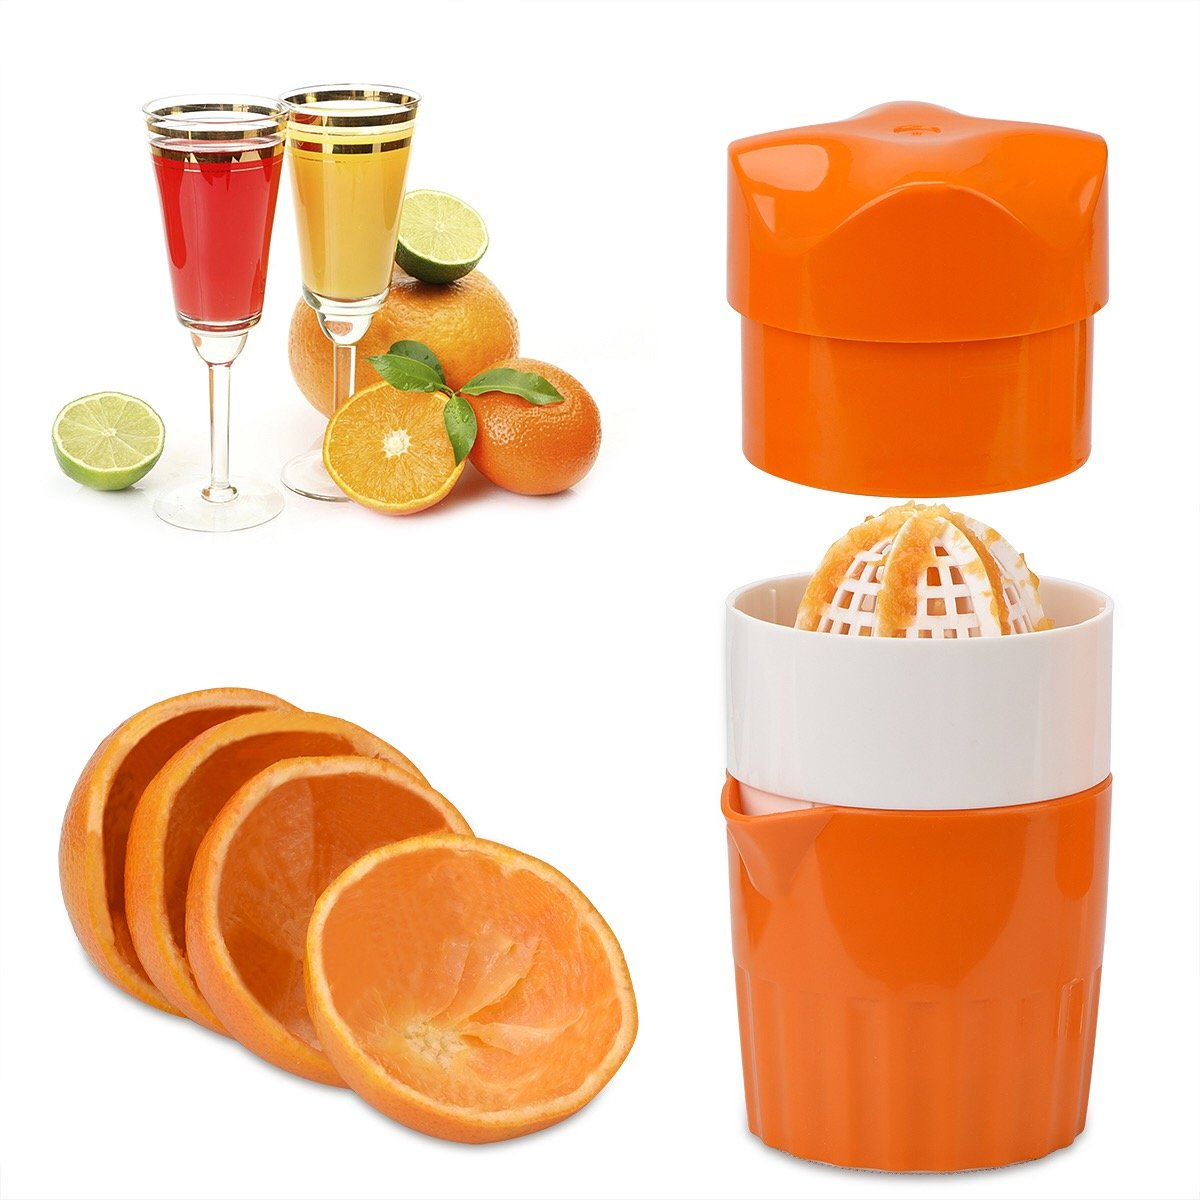 OKAYMART Squeezer, Manual Hand Juicer with Strainer and Container